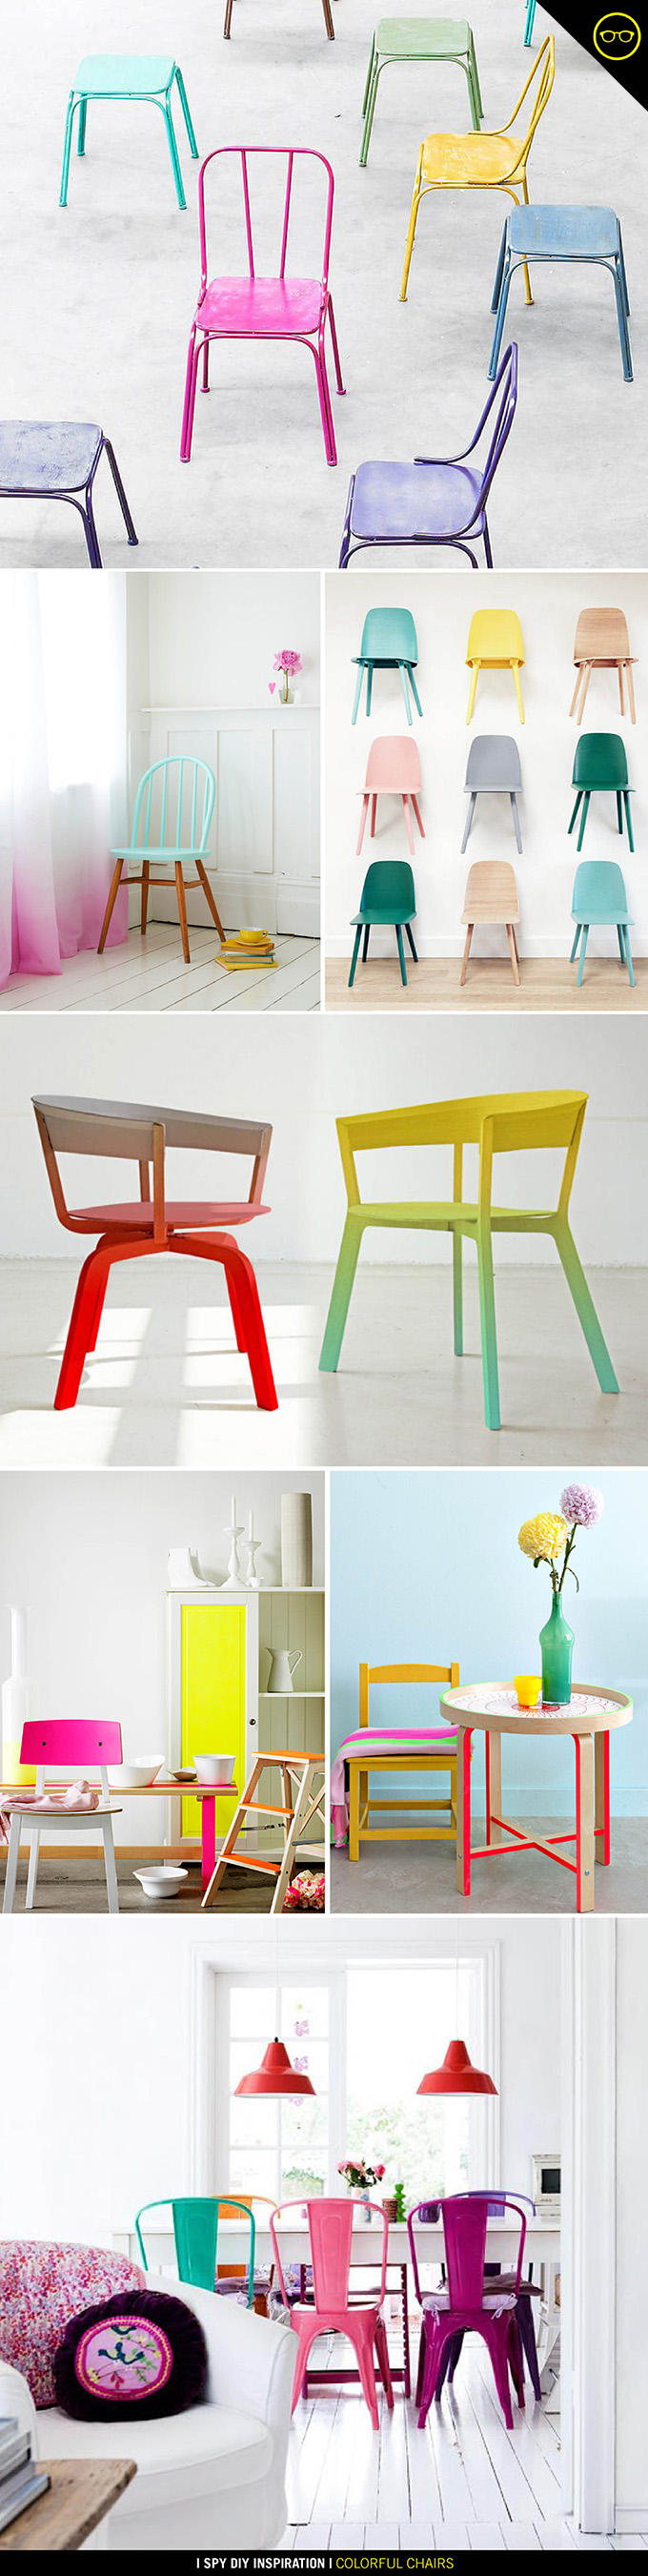 Ispydiy_inspiration_colorfulchairs